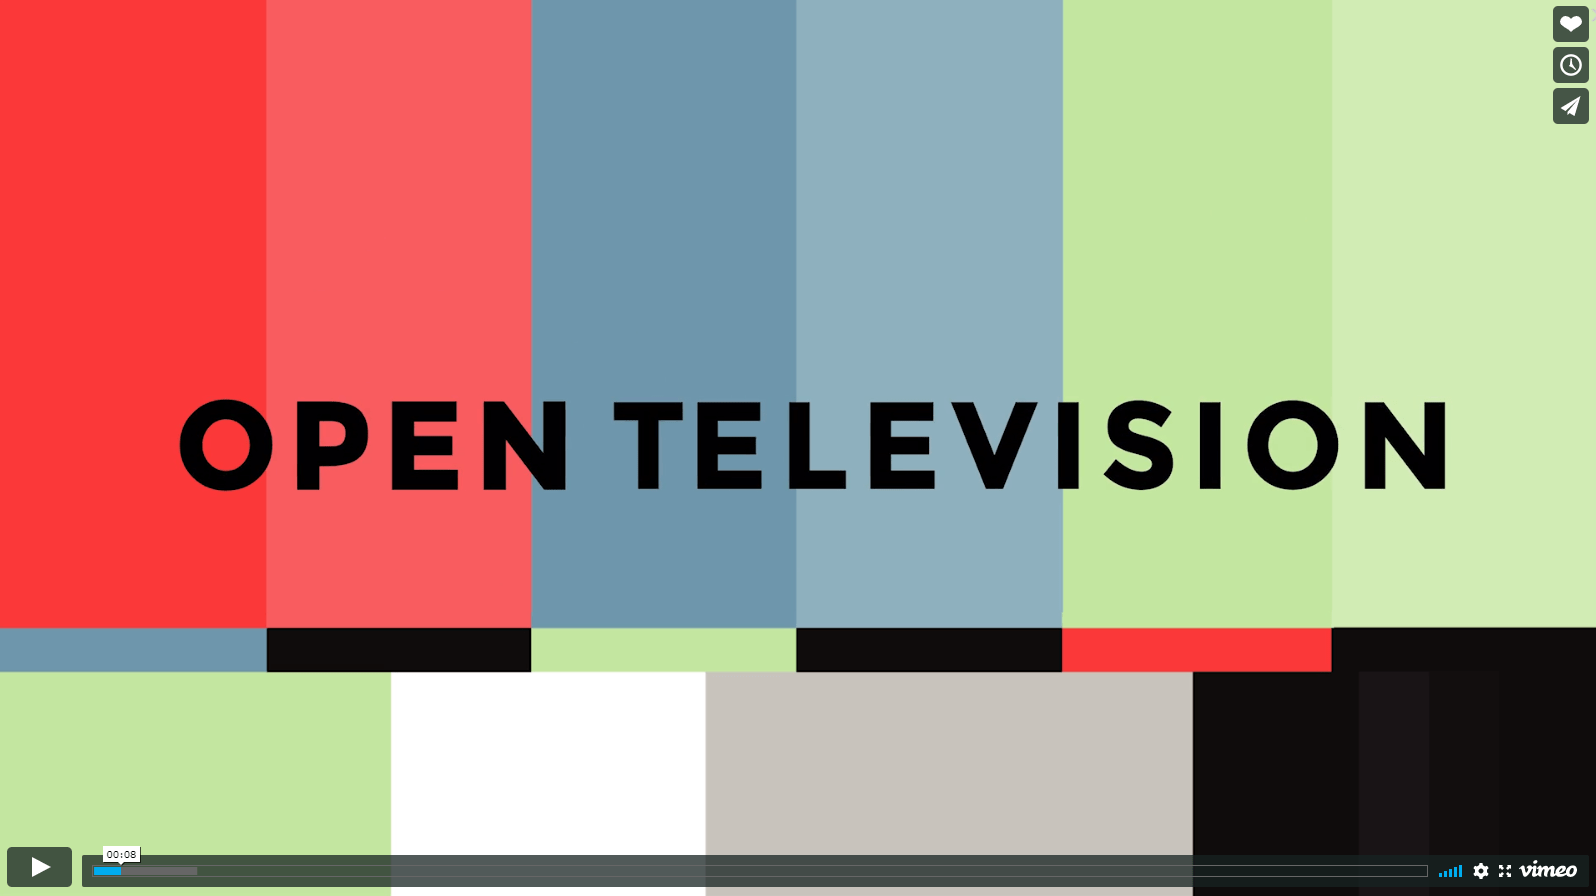 Open Television on Vimeo